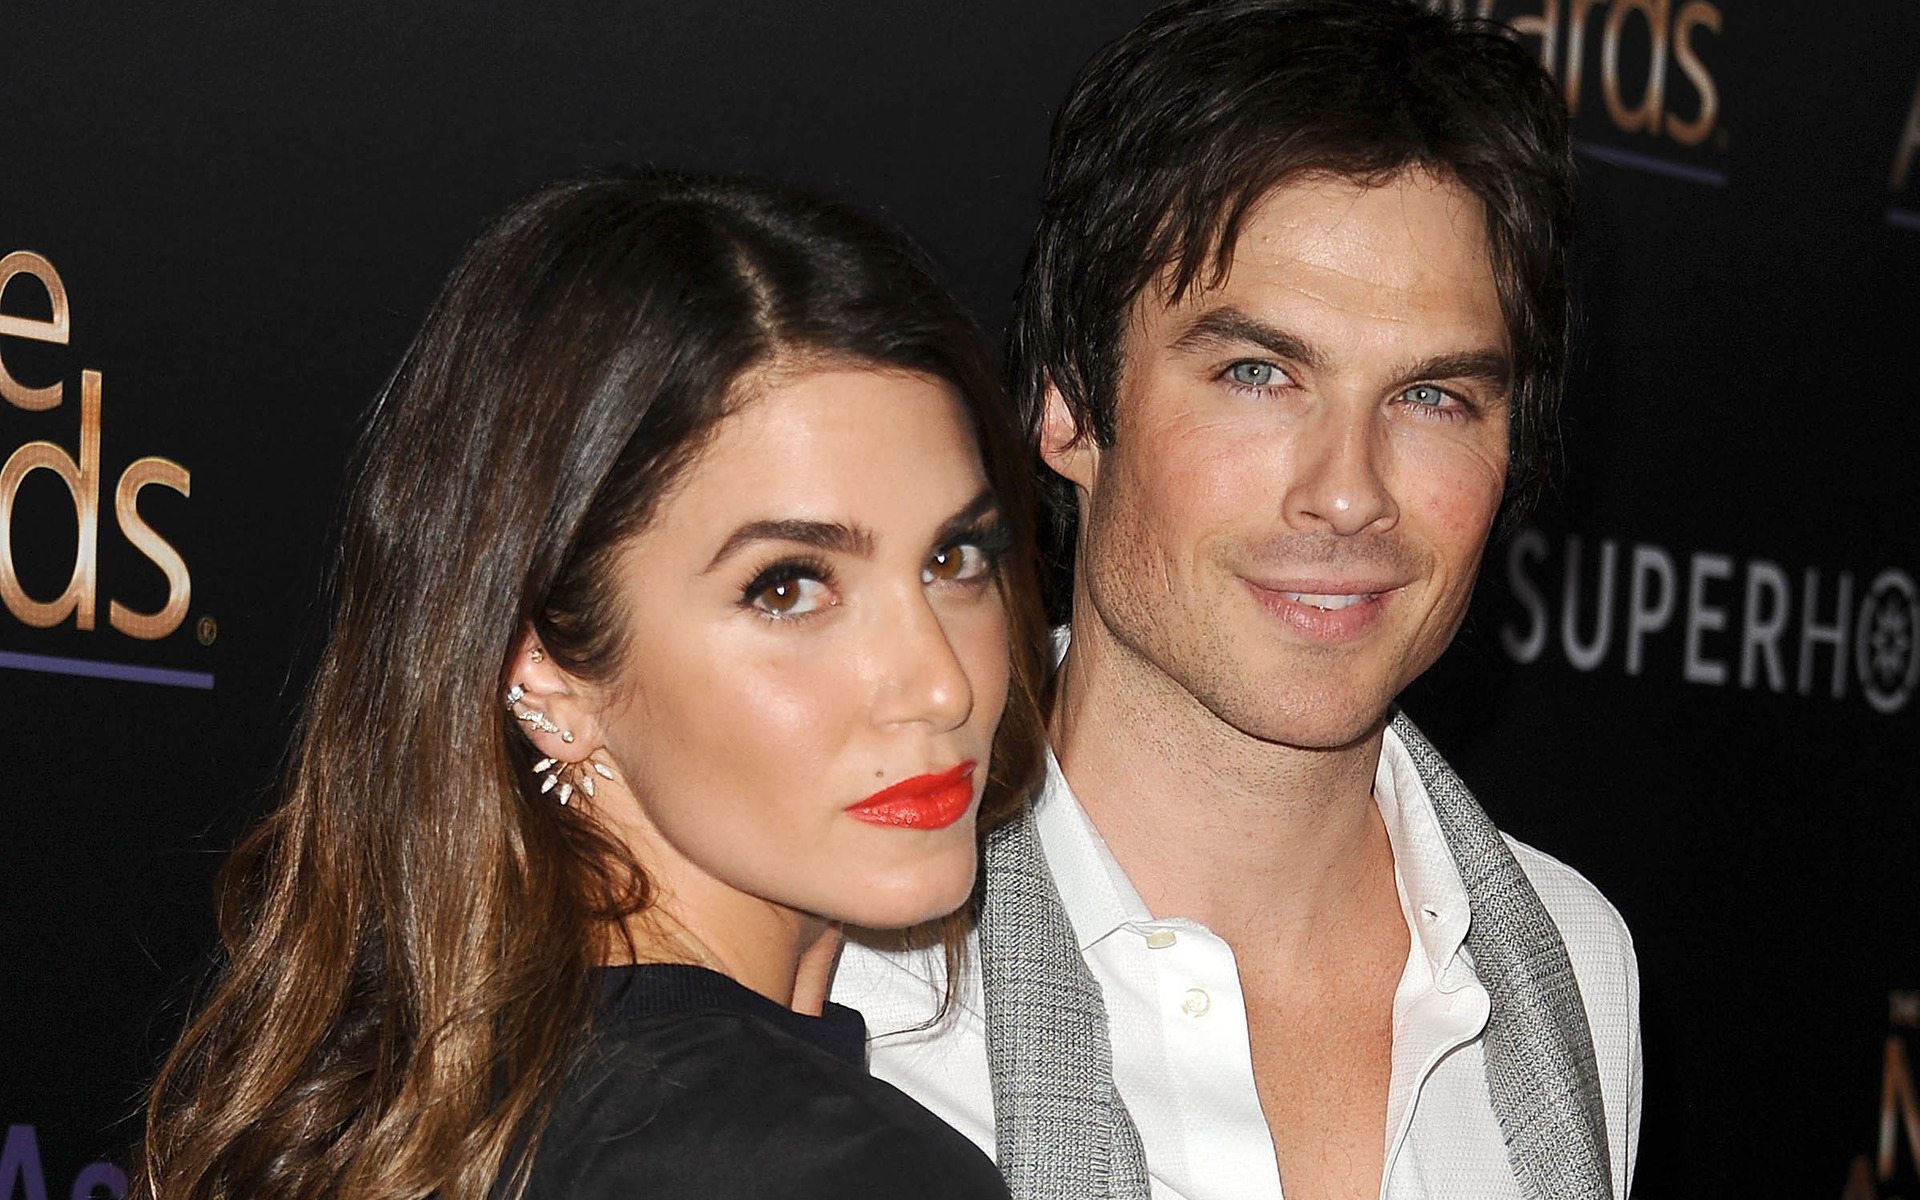 Nikki Reed and Ian Somerhalder for 1920 x 1200 widescreen resolution